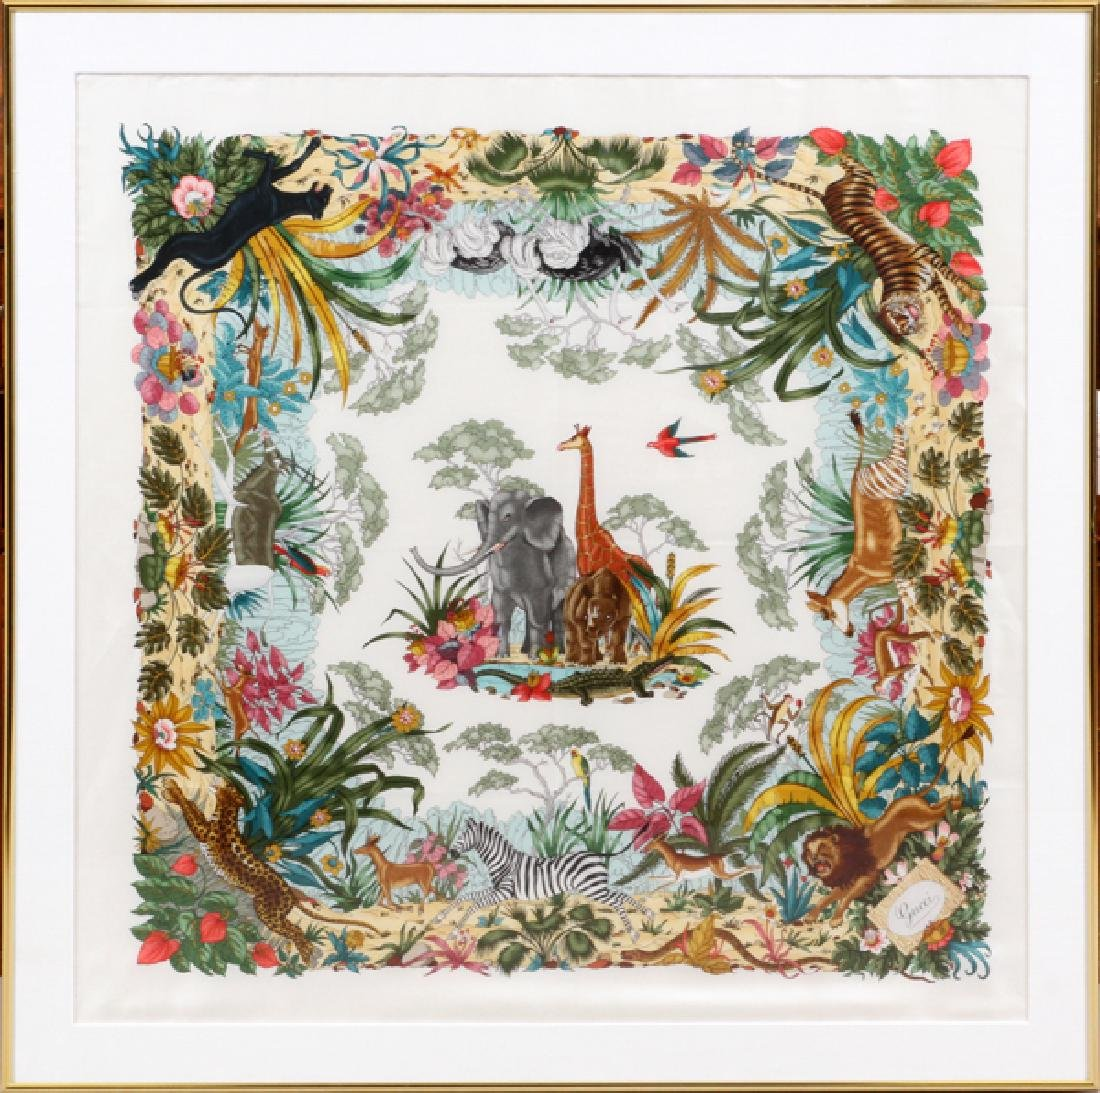 "FRAMED GUCCI SILK SCARF, H 33"", W 33"""